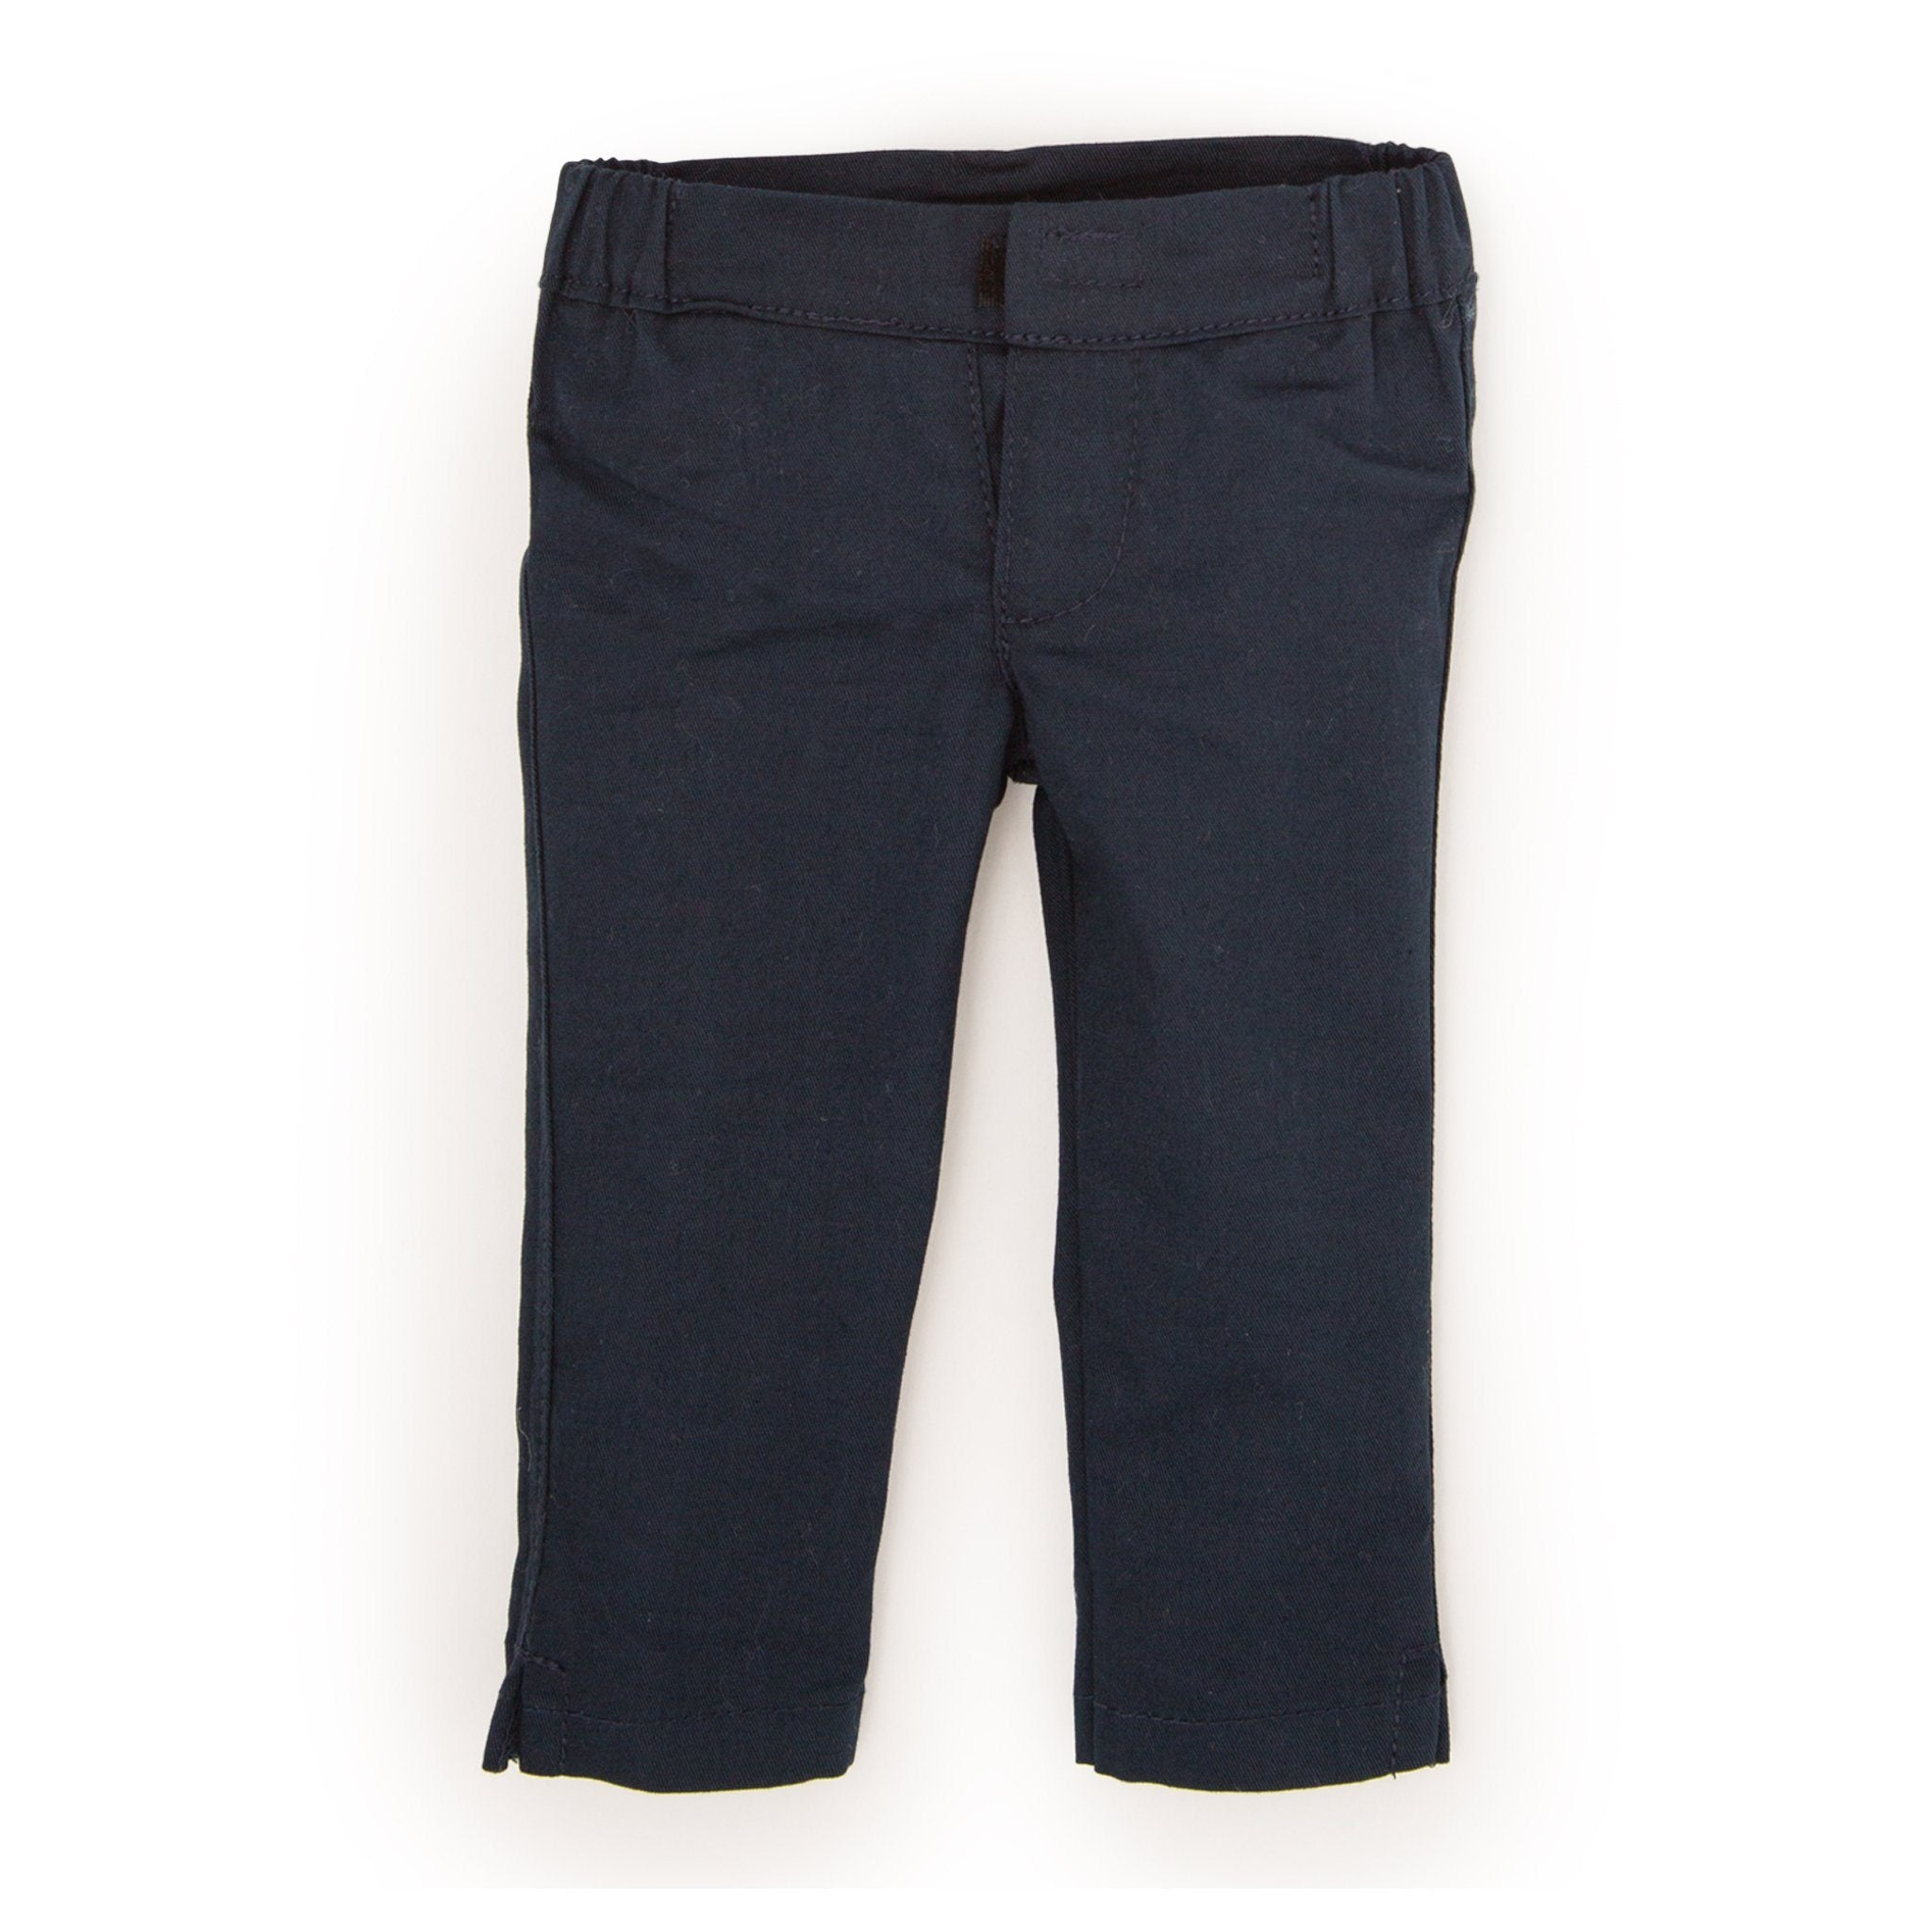 Snow Cute navy slim-fit pants fits all 18 inch dolls.